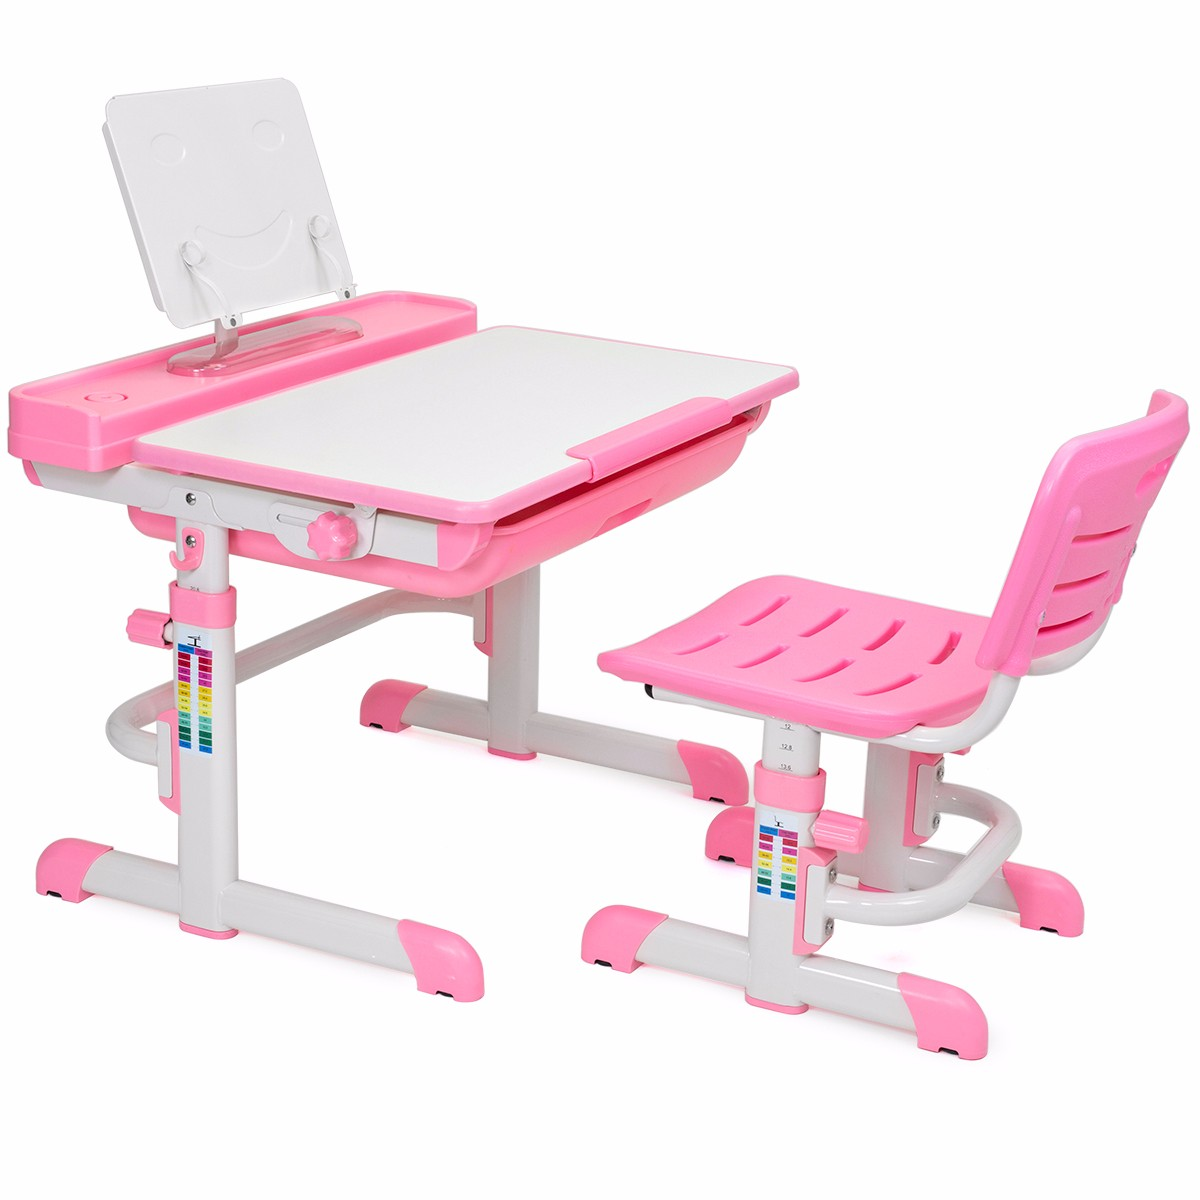 Kids Interactive Work Station Desk & Chair Adjustable Height, Pink by